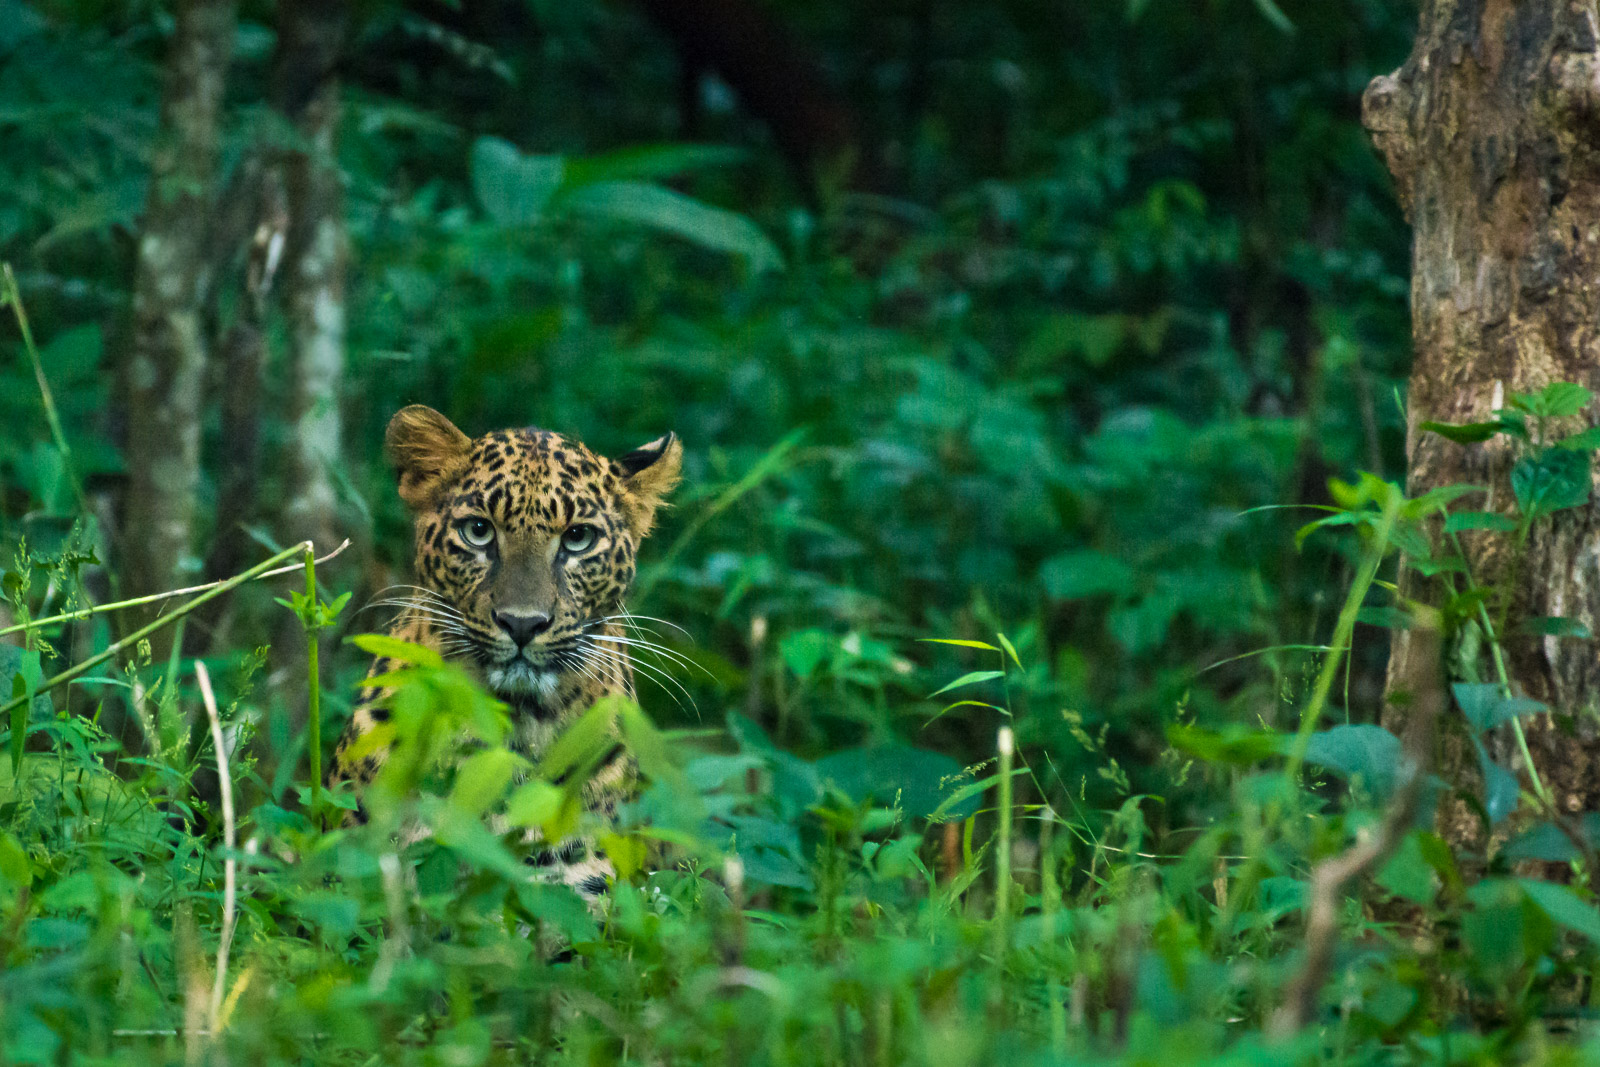 Image: A Leopard during a late winter evening. Focus performance was decent during low light. Exif:...